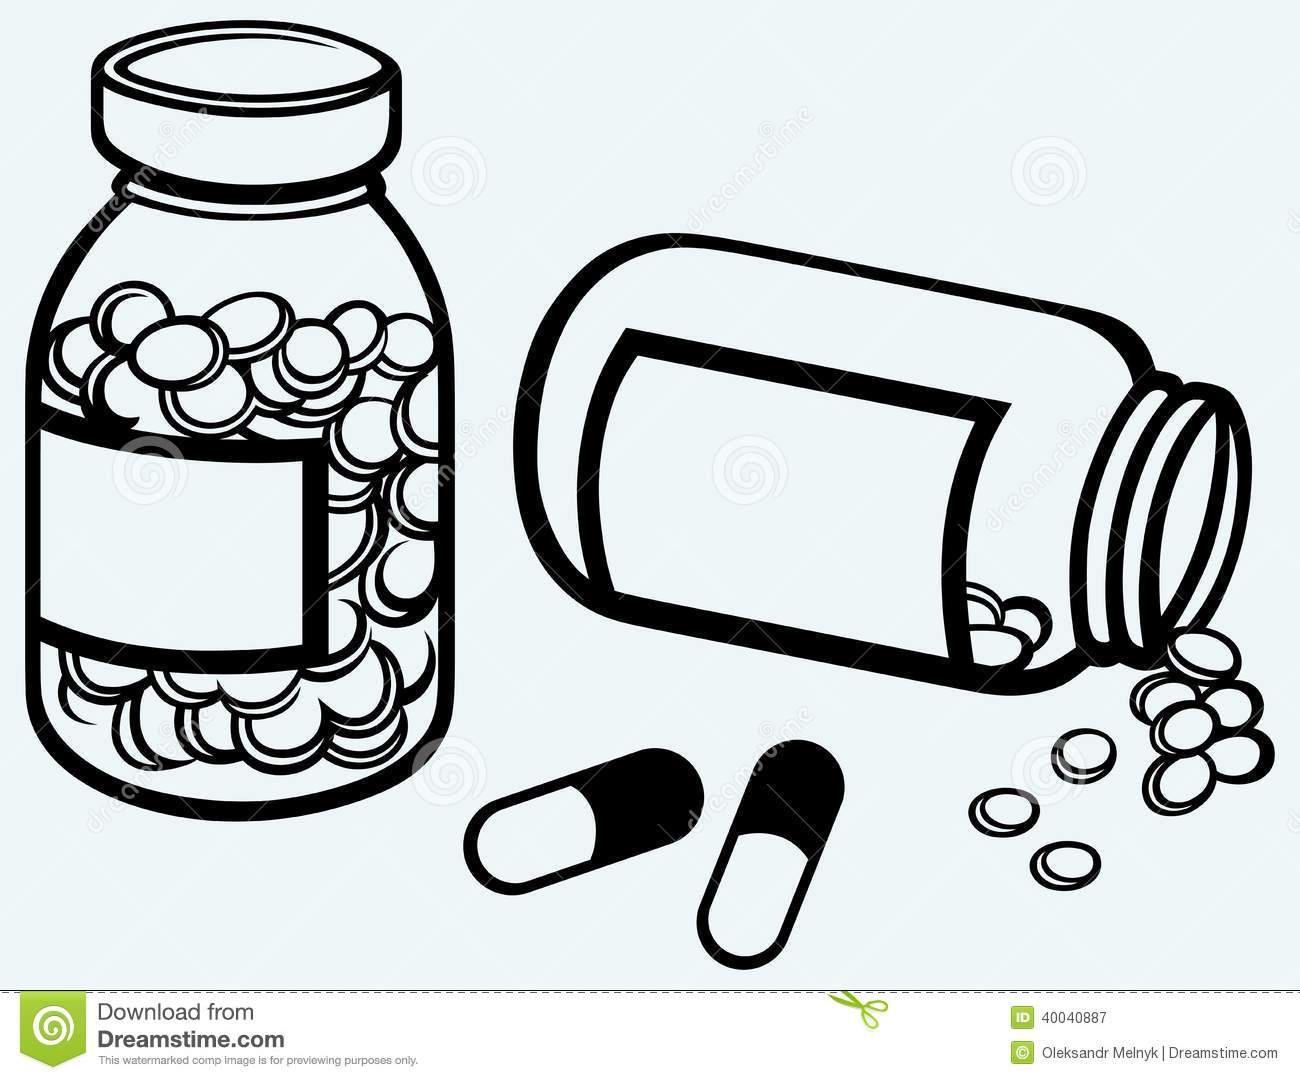 Compare 2 products clipart black and white image black and white Medicine tablets clipart black and white 2 » Clipart Portal image black and white